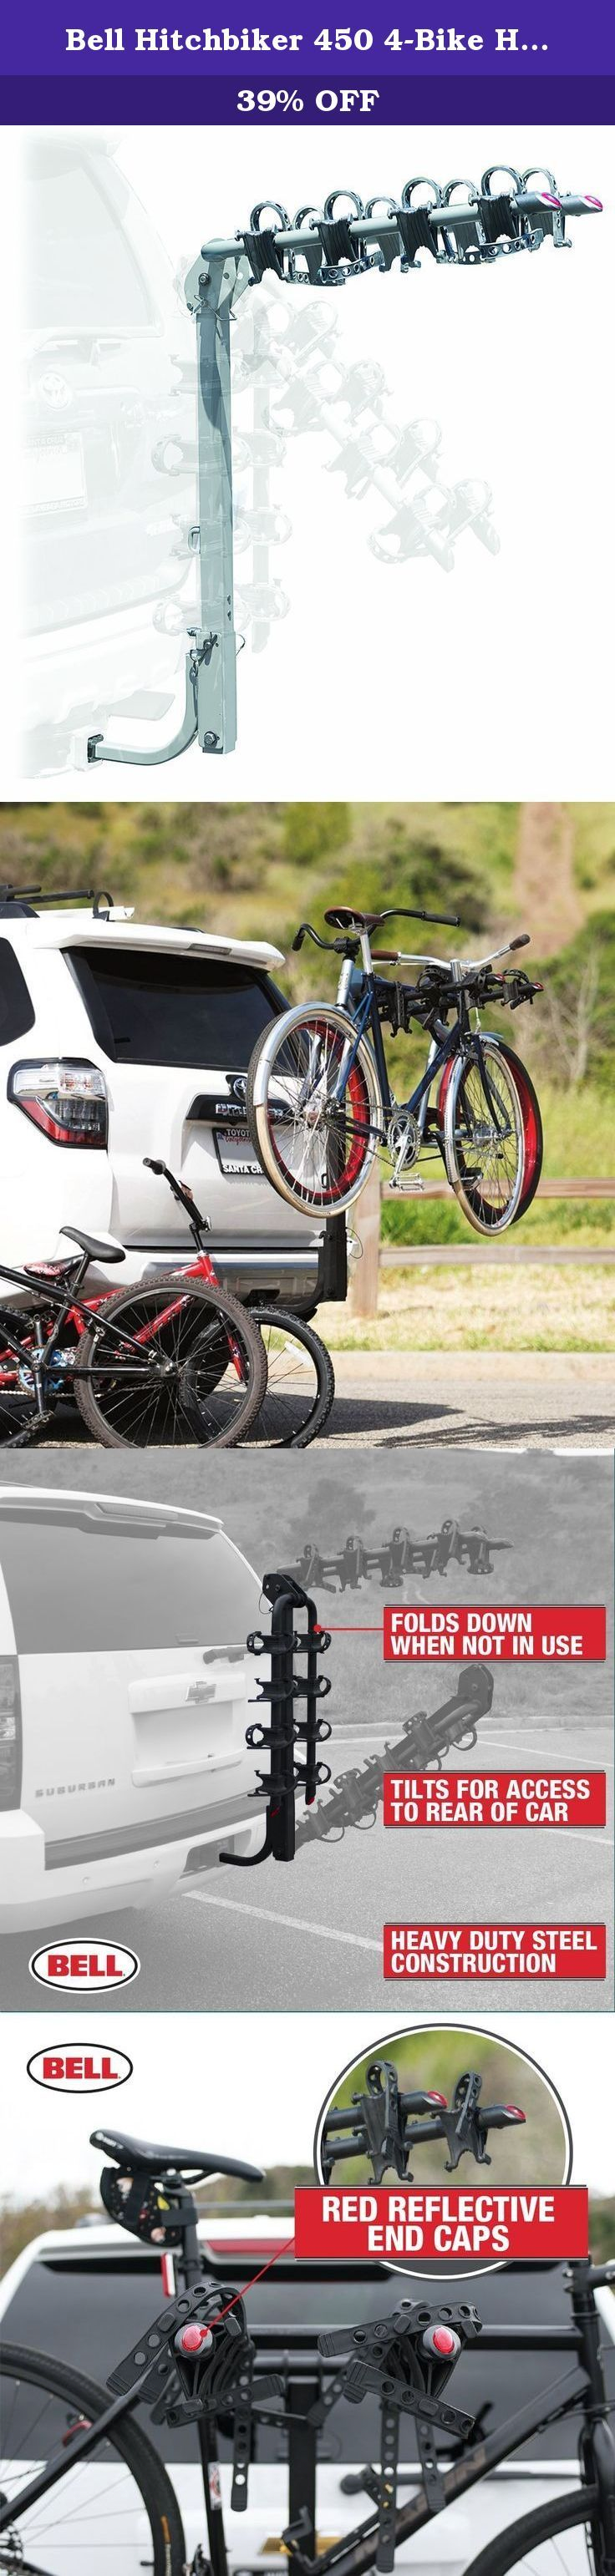 Bell Hitchbiker 450 4-Bike Hitch Rack with Stability. The Bell Hitchbiker 450 is a premium folding hitch rack, now with bike stability. Soft stability cradles keep bikes secure and separated so they don't scratch each other or the car.